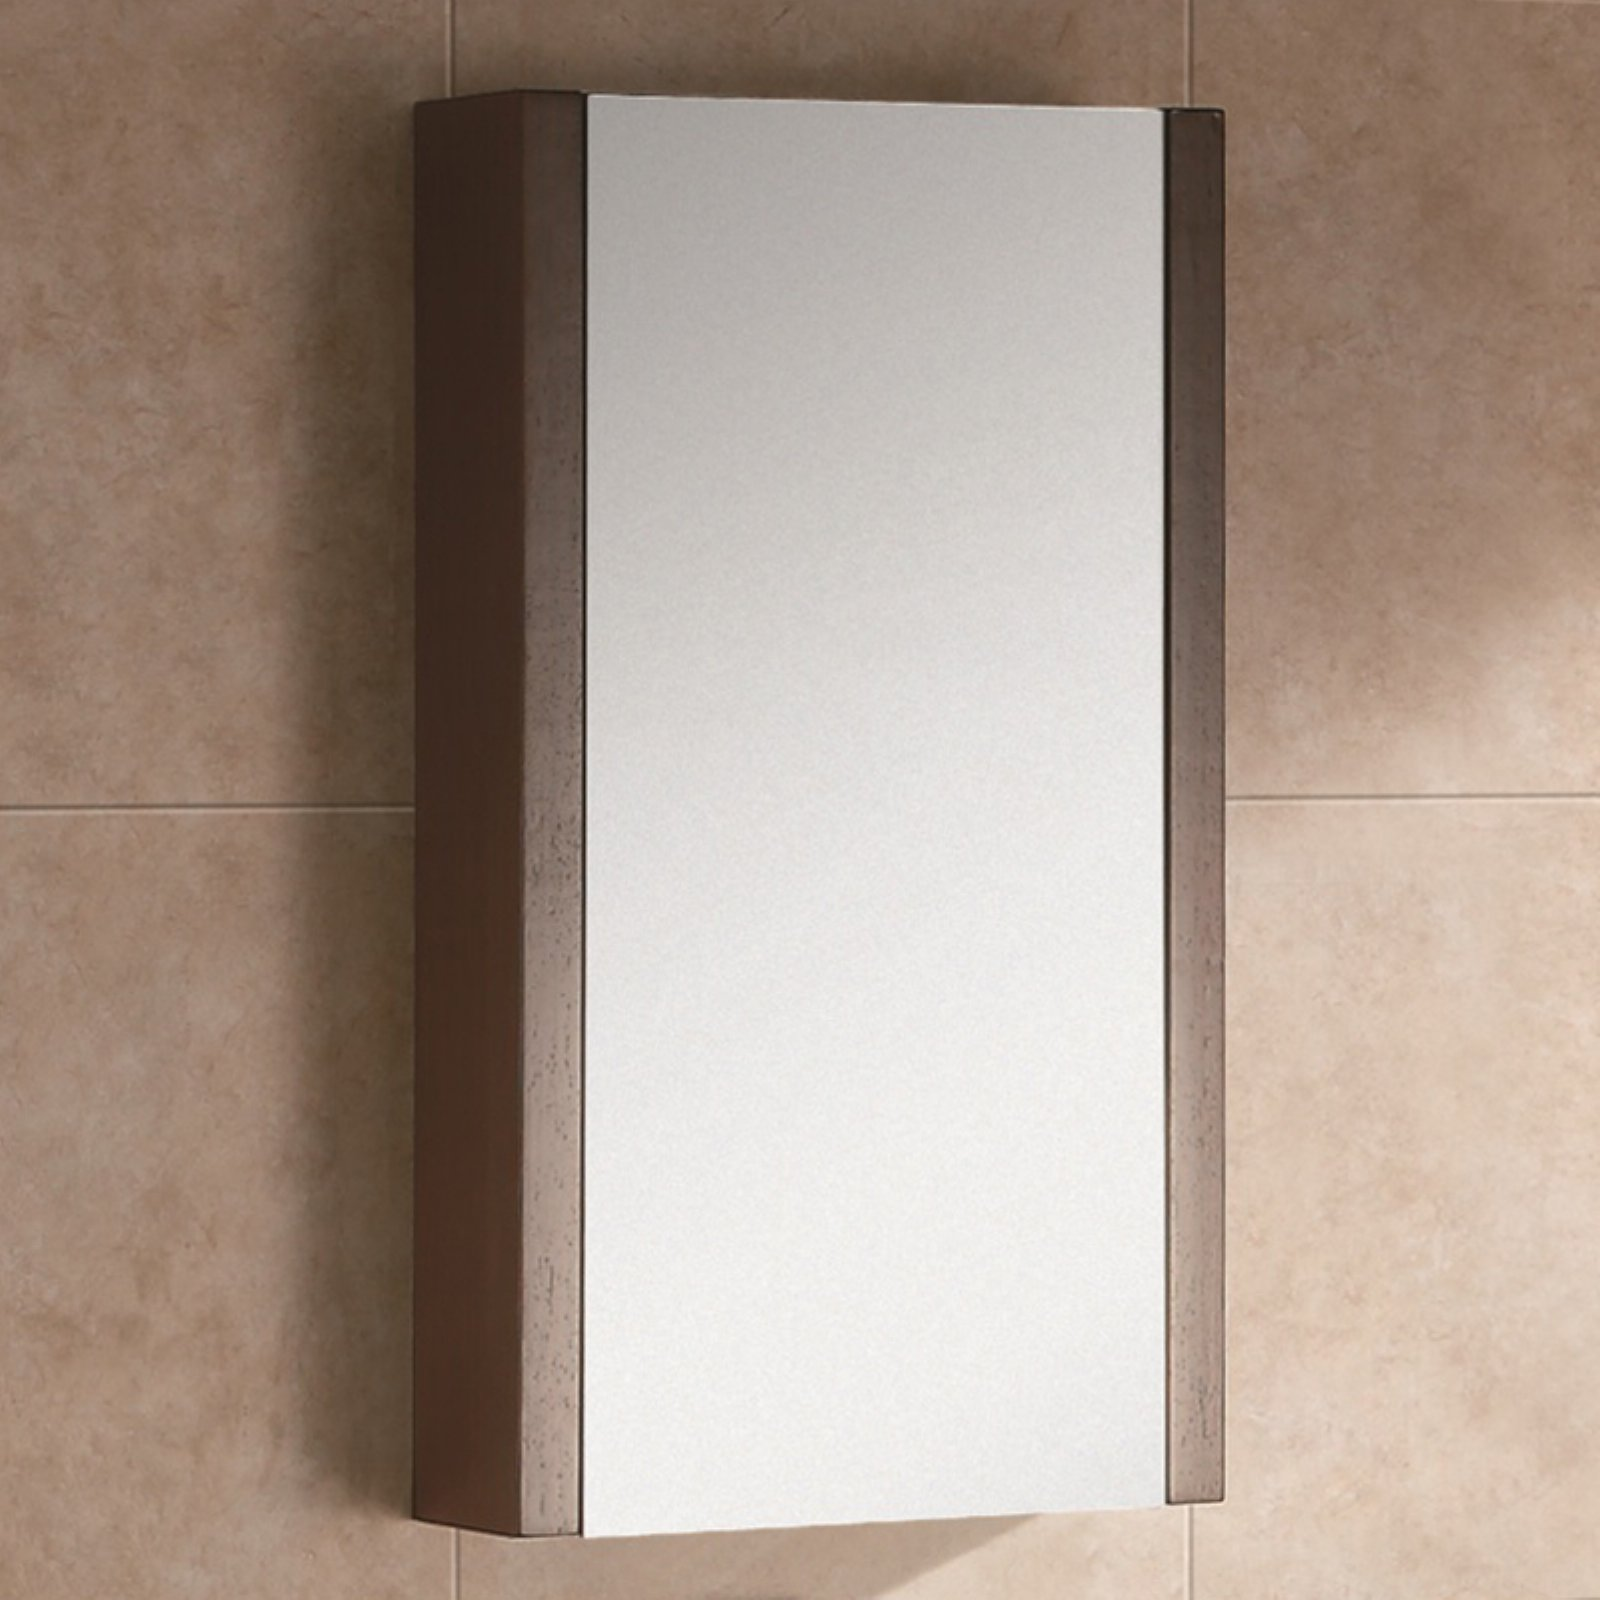 Fine Fixtures Modena 16 in. Surface Mount Medicine Cabinet